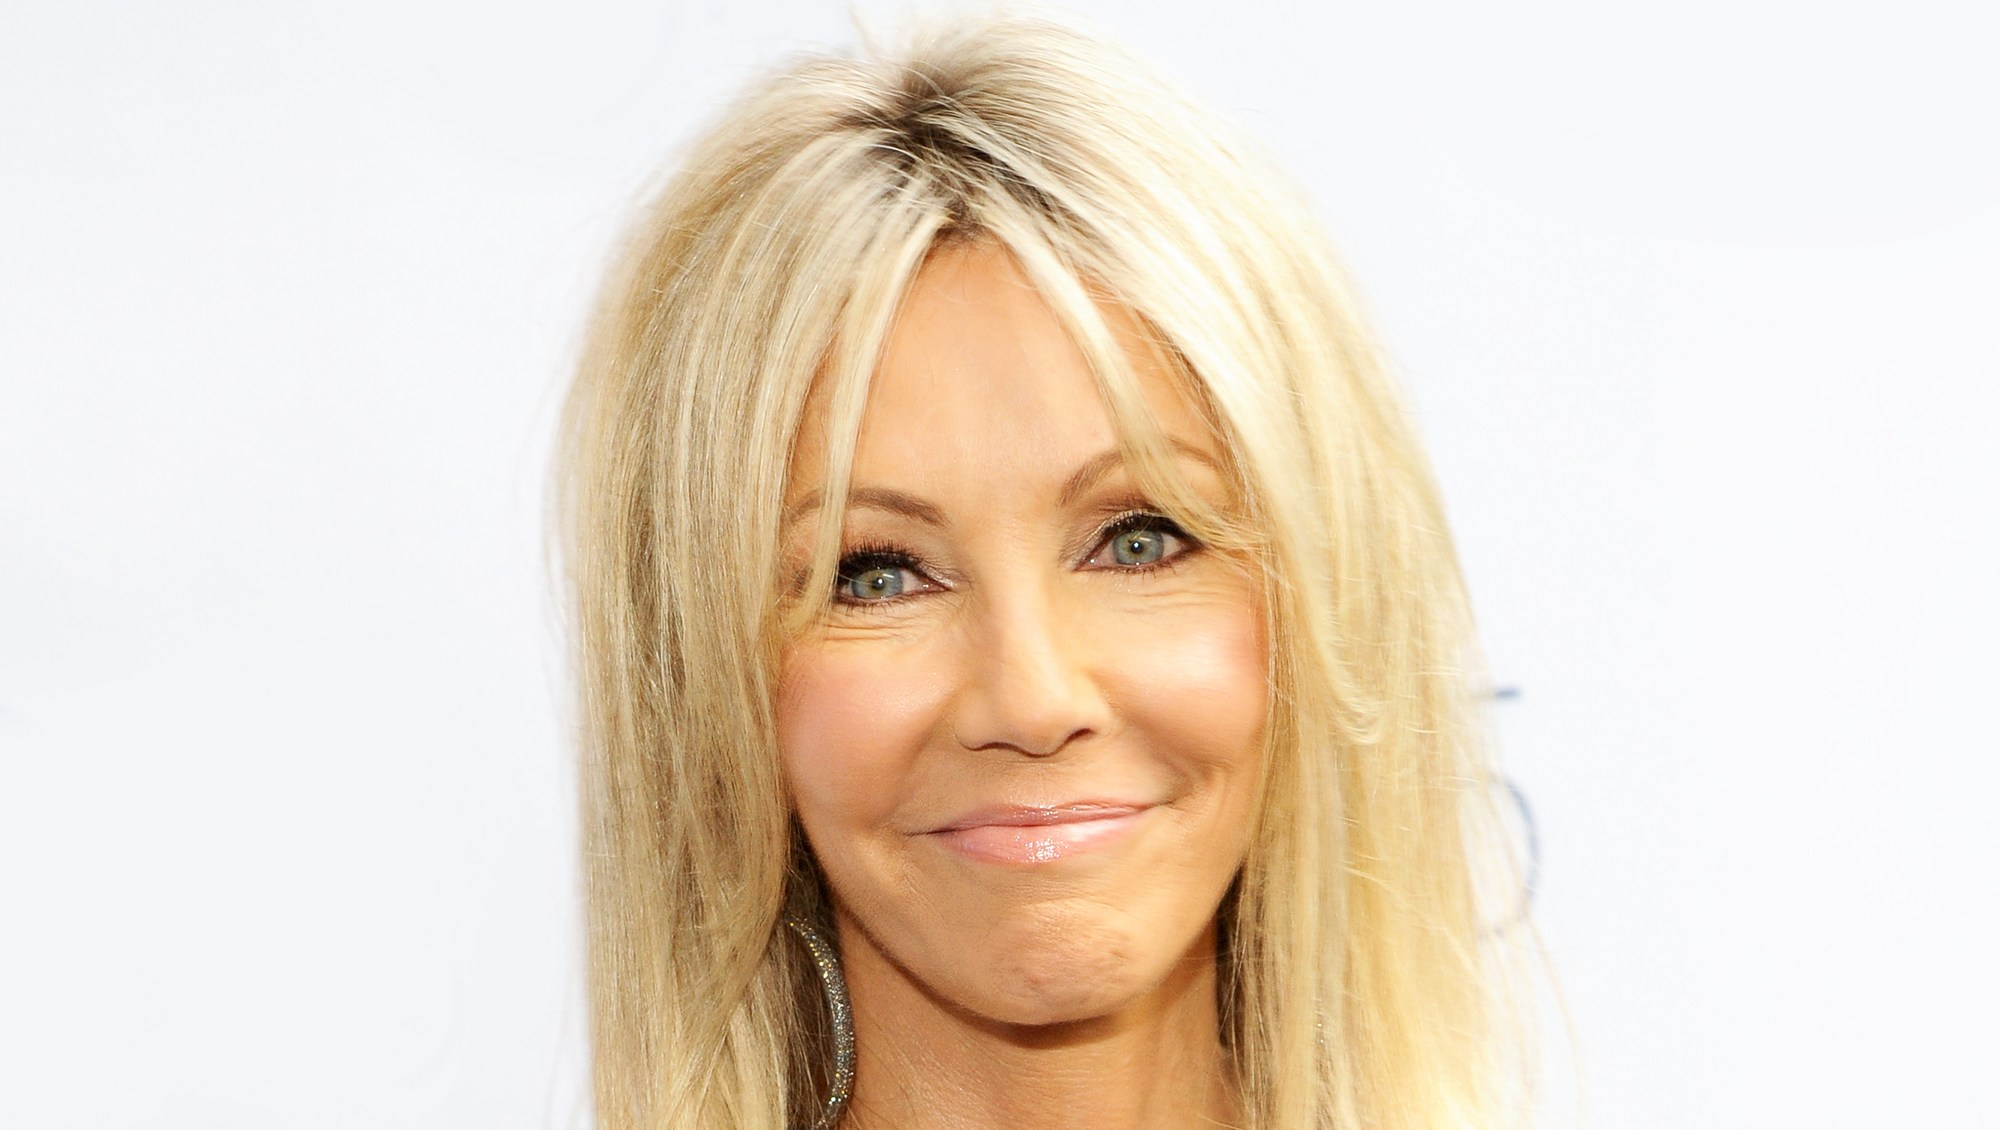 Heather Locklear attends TNT 25TH Anniversary Party during Turner Broadcasting's 2013 TCA Summer Tour at The Beverly Hilton Hotel in Beverly Hills, California.